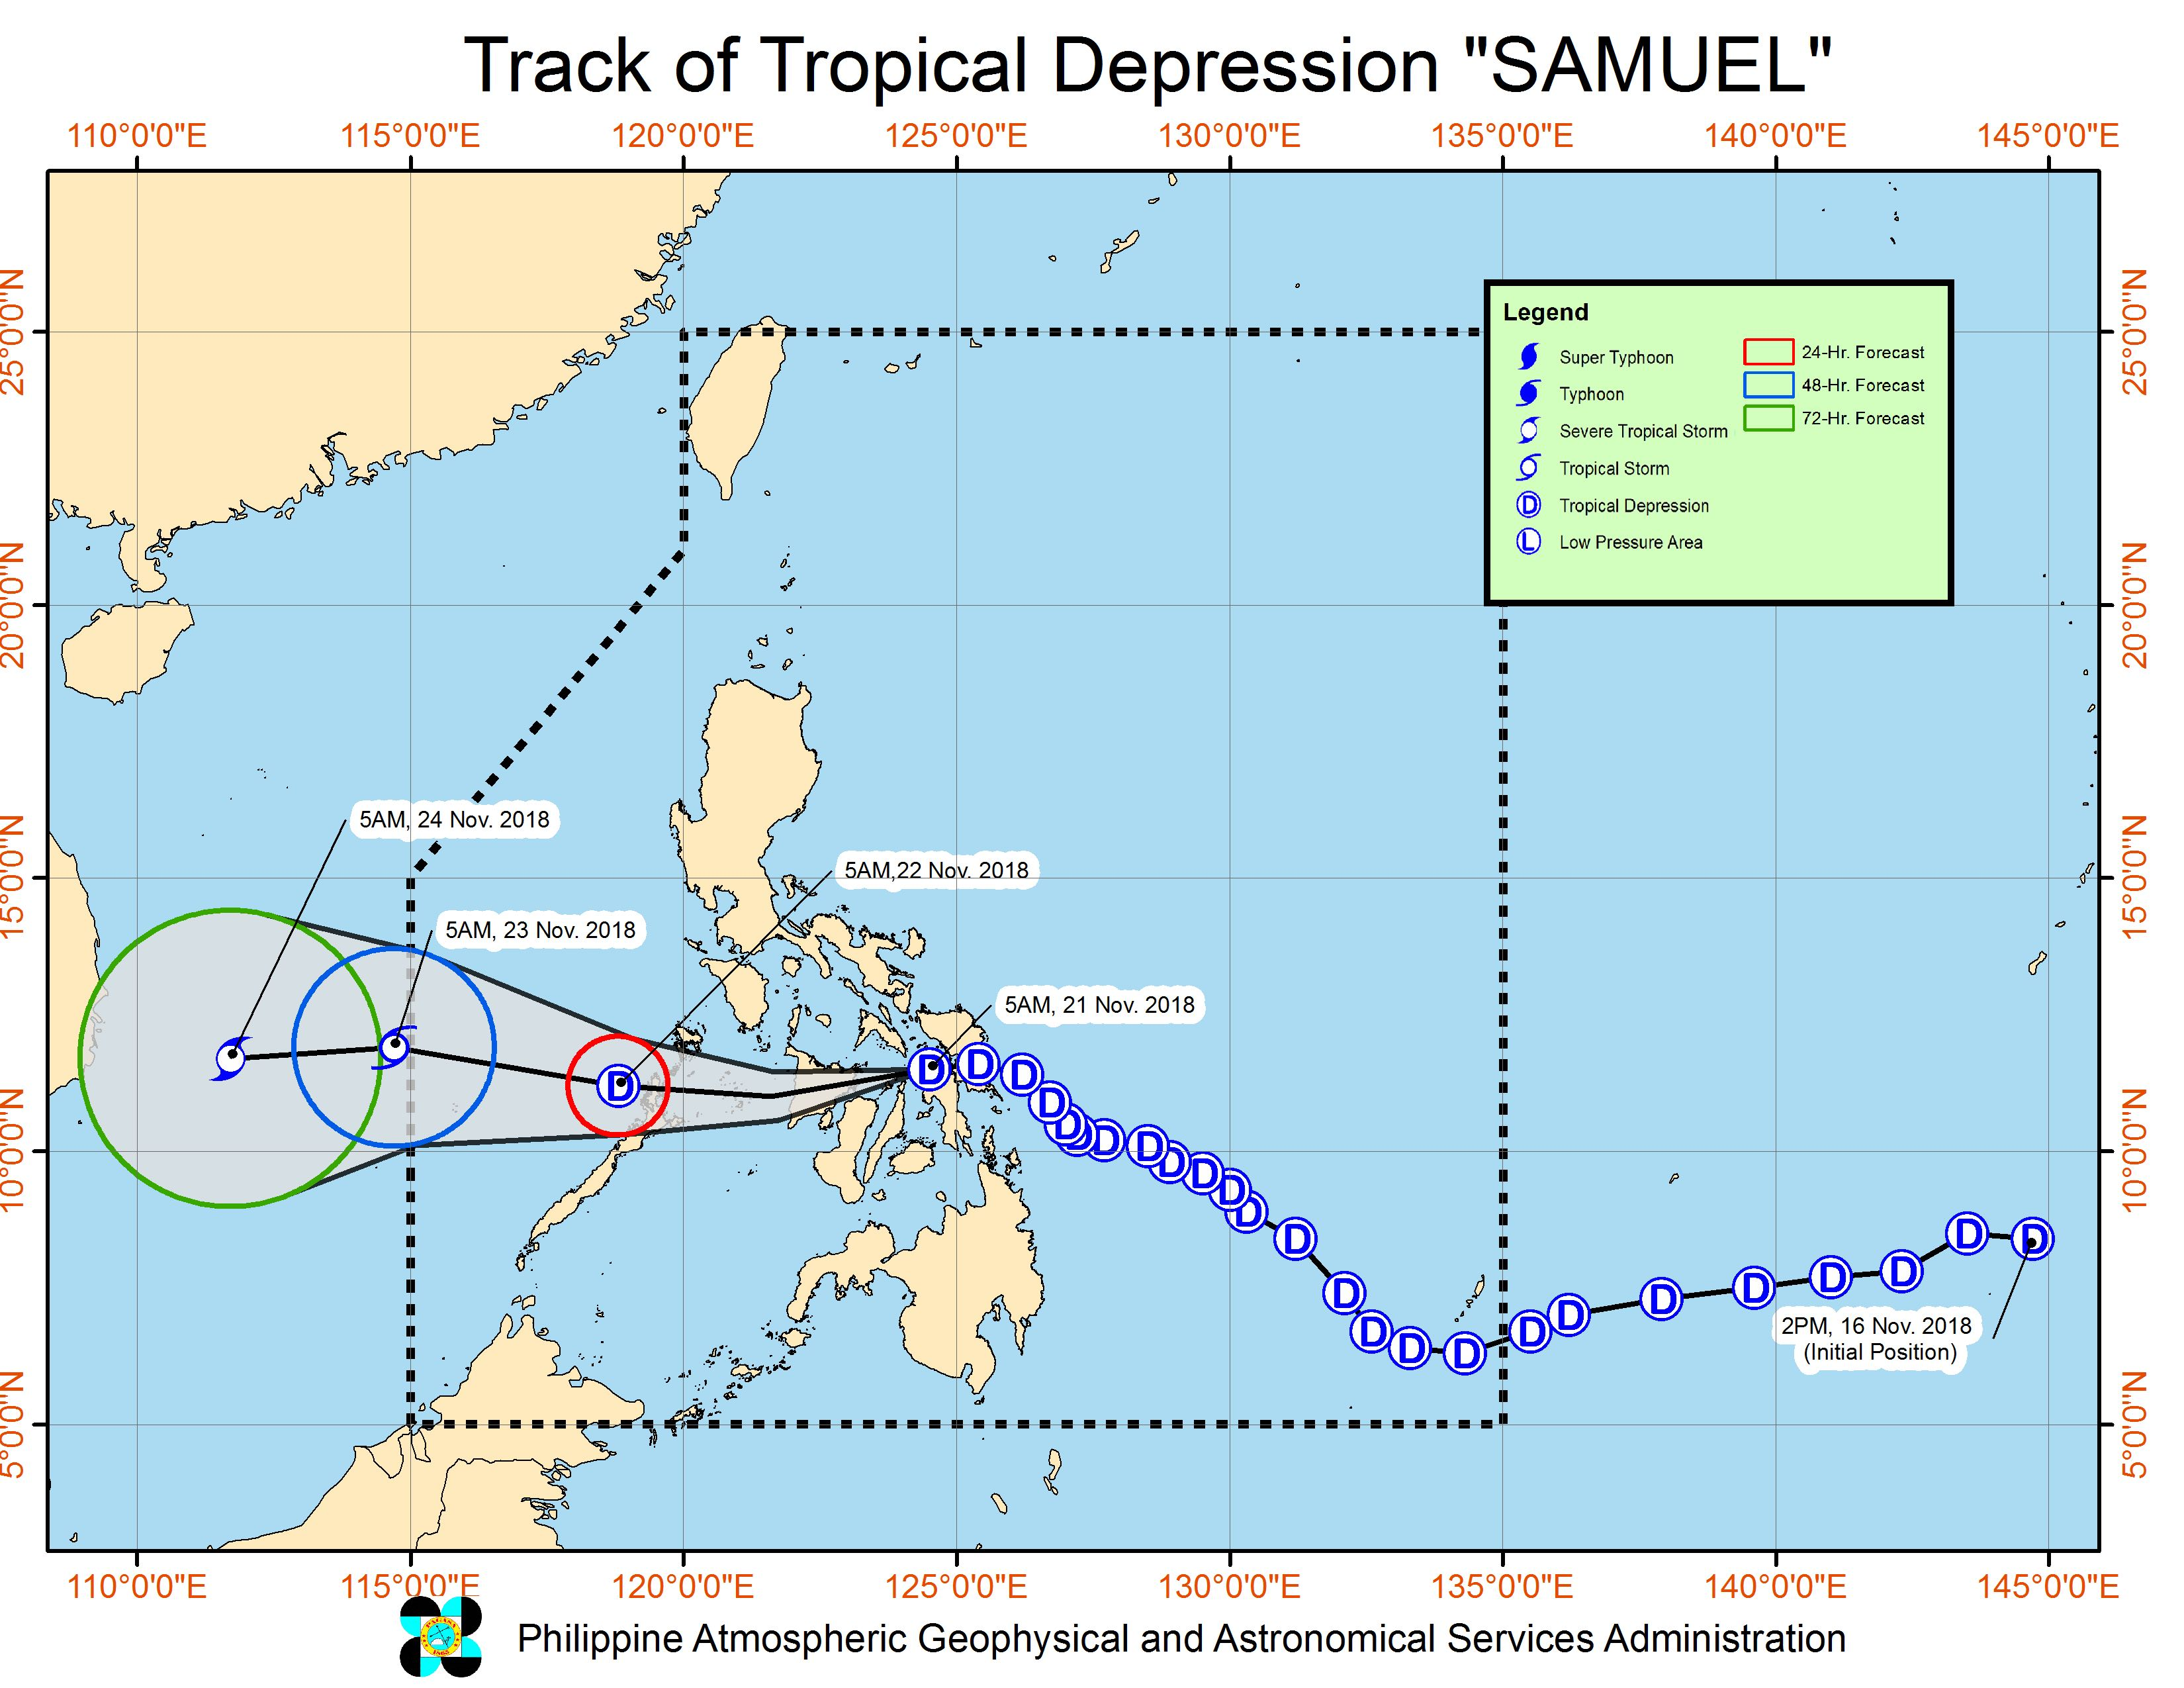 Forecast track of Tropical Depression Samuel as of November 21, 2018, 8 am. Image from PAGASA